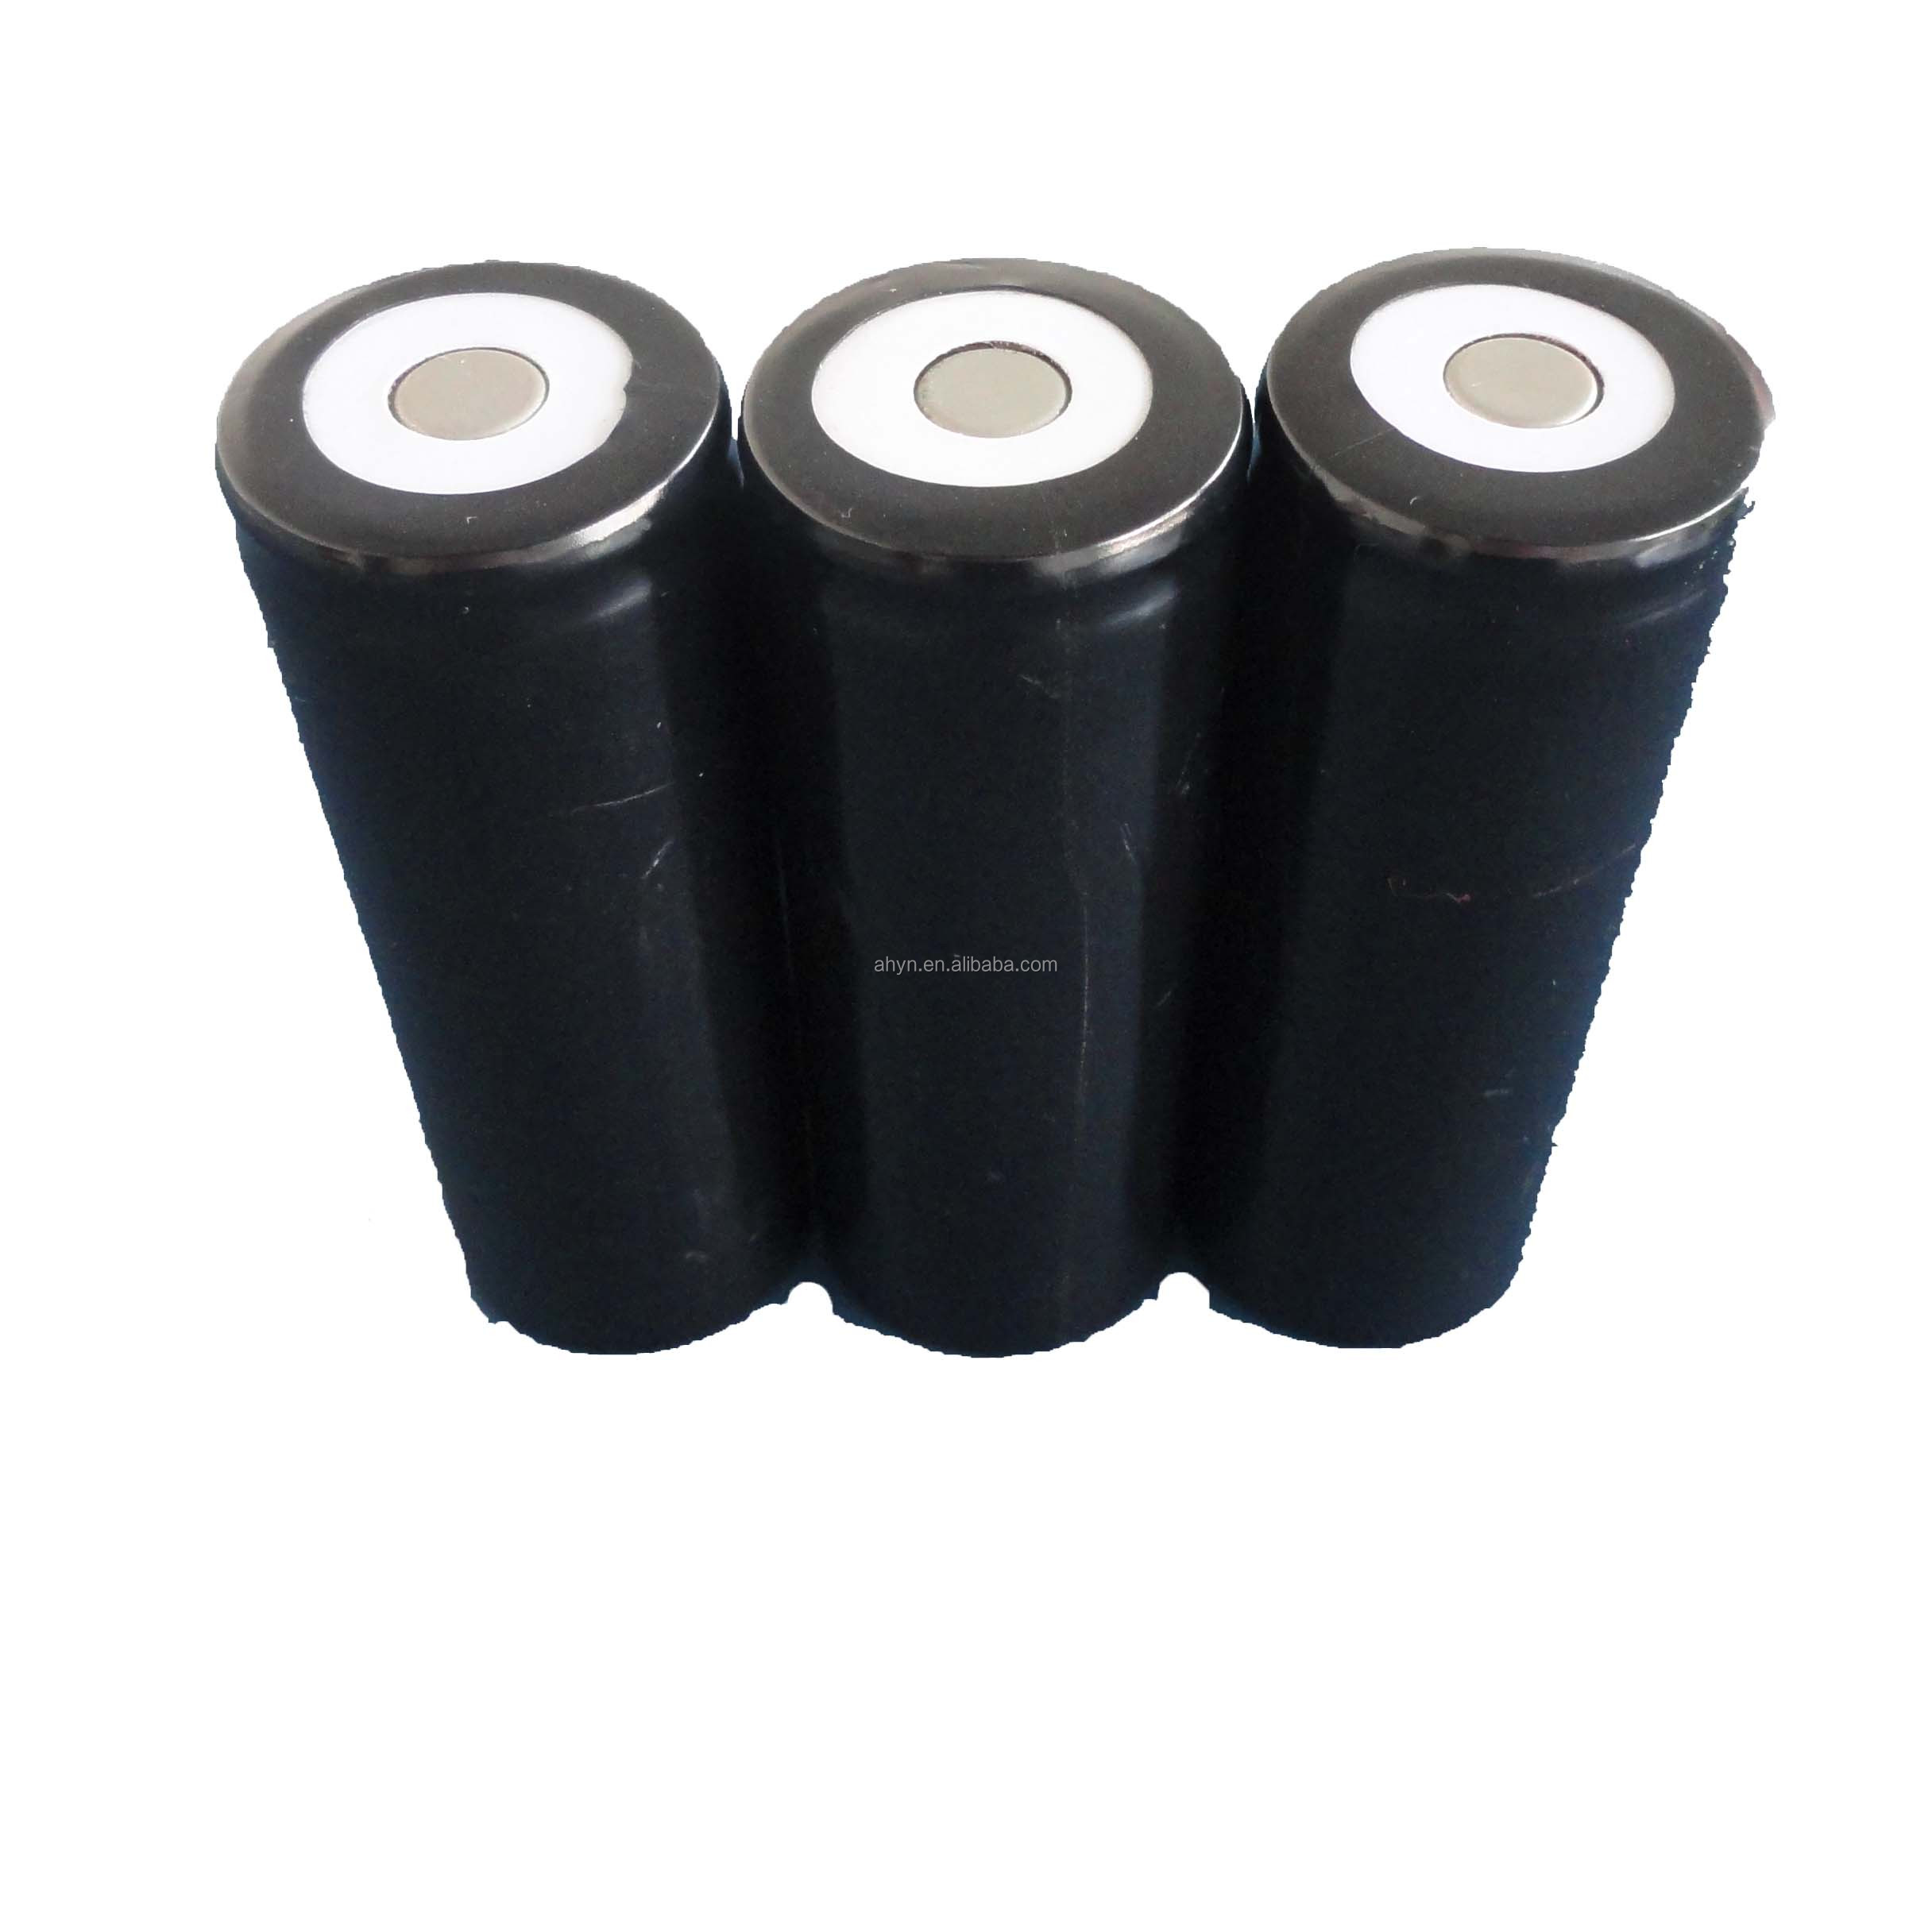 2014 China made hotsale LiFePO4 battery 3.2v 12000mah for electric vehicle/energy storage battery/ solar battery